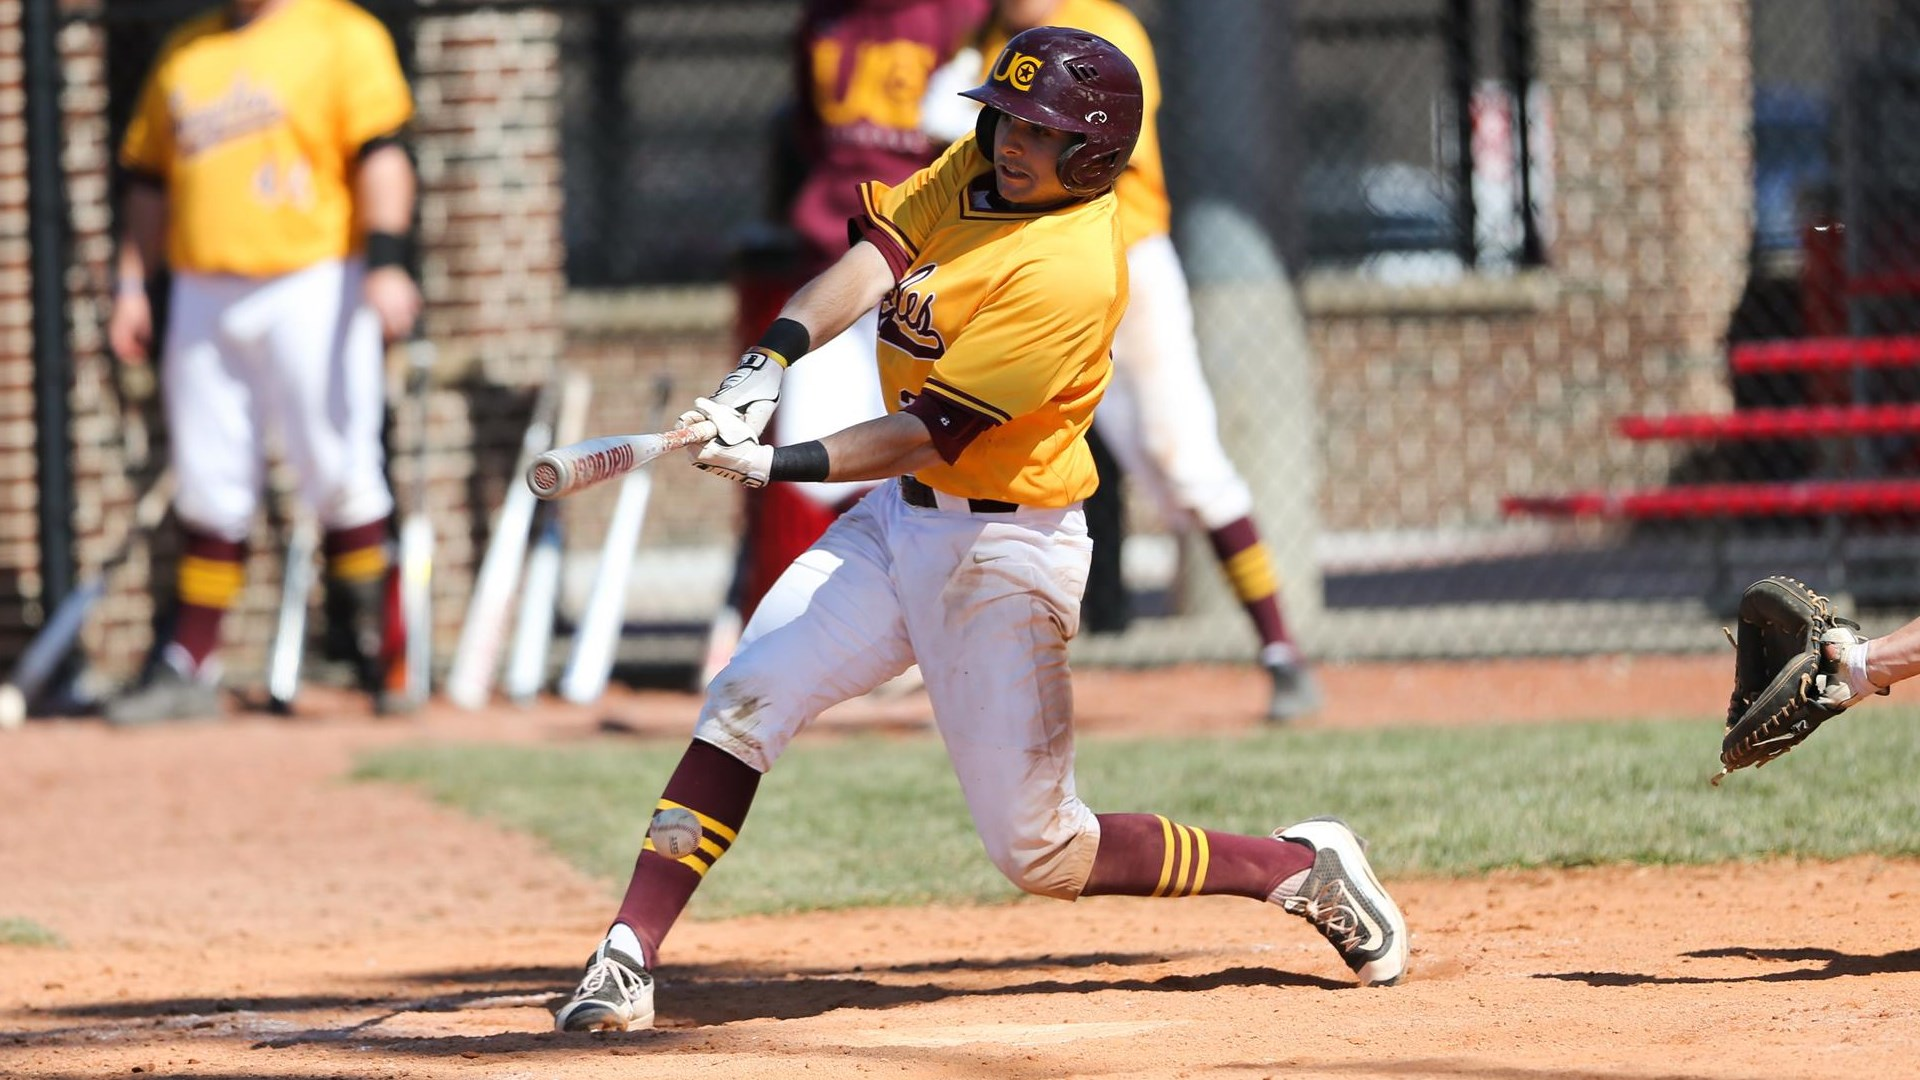 Toronto Mets alum Gianfranco Morello (Toronto, Ont.) had six hits - including two doubles and a triple - and five RBIs for Charleston in their first two games of the Mountain East Conference (MEC) championship tournament this weekend. Photo: University of Charleston Athletics